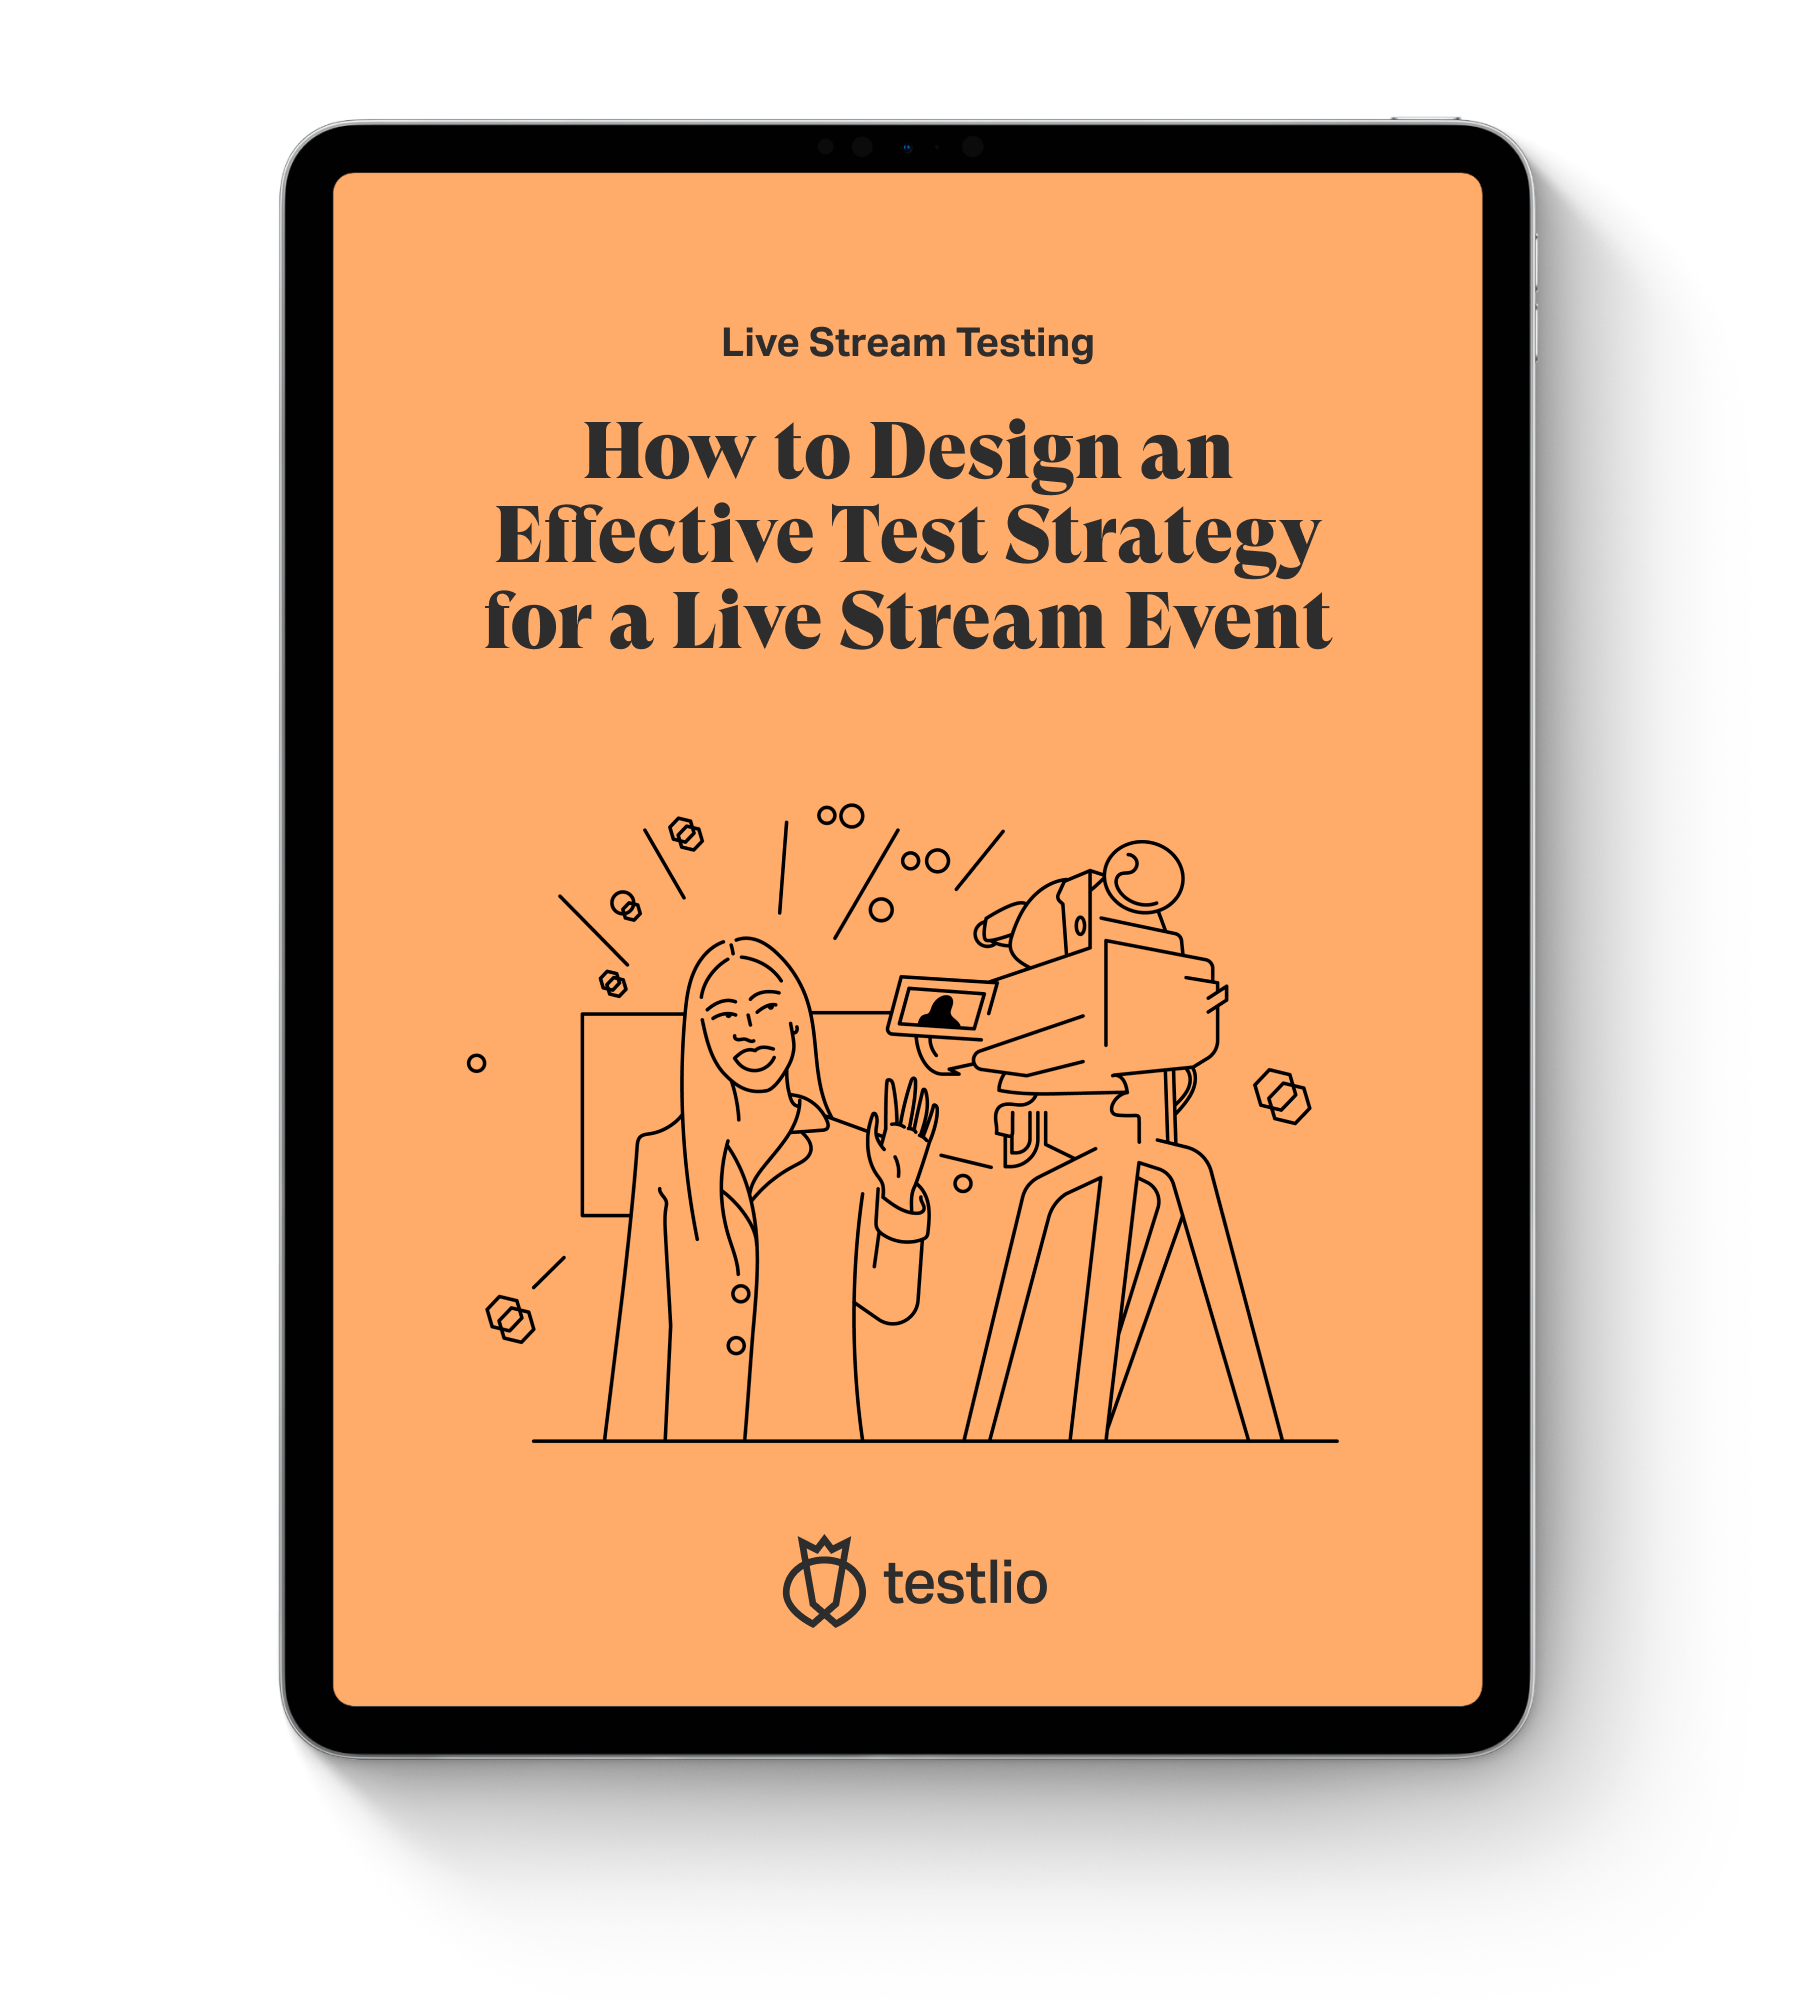 How to design an effective test strategy for a live stream event